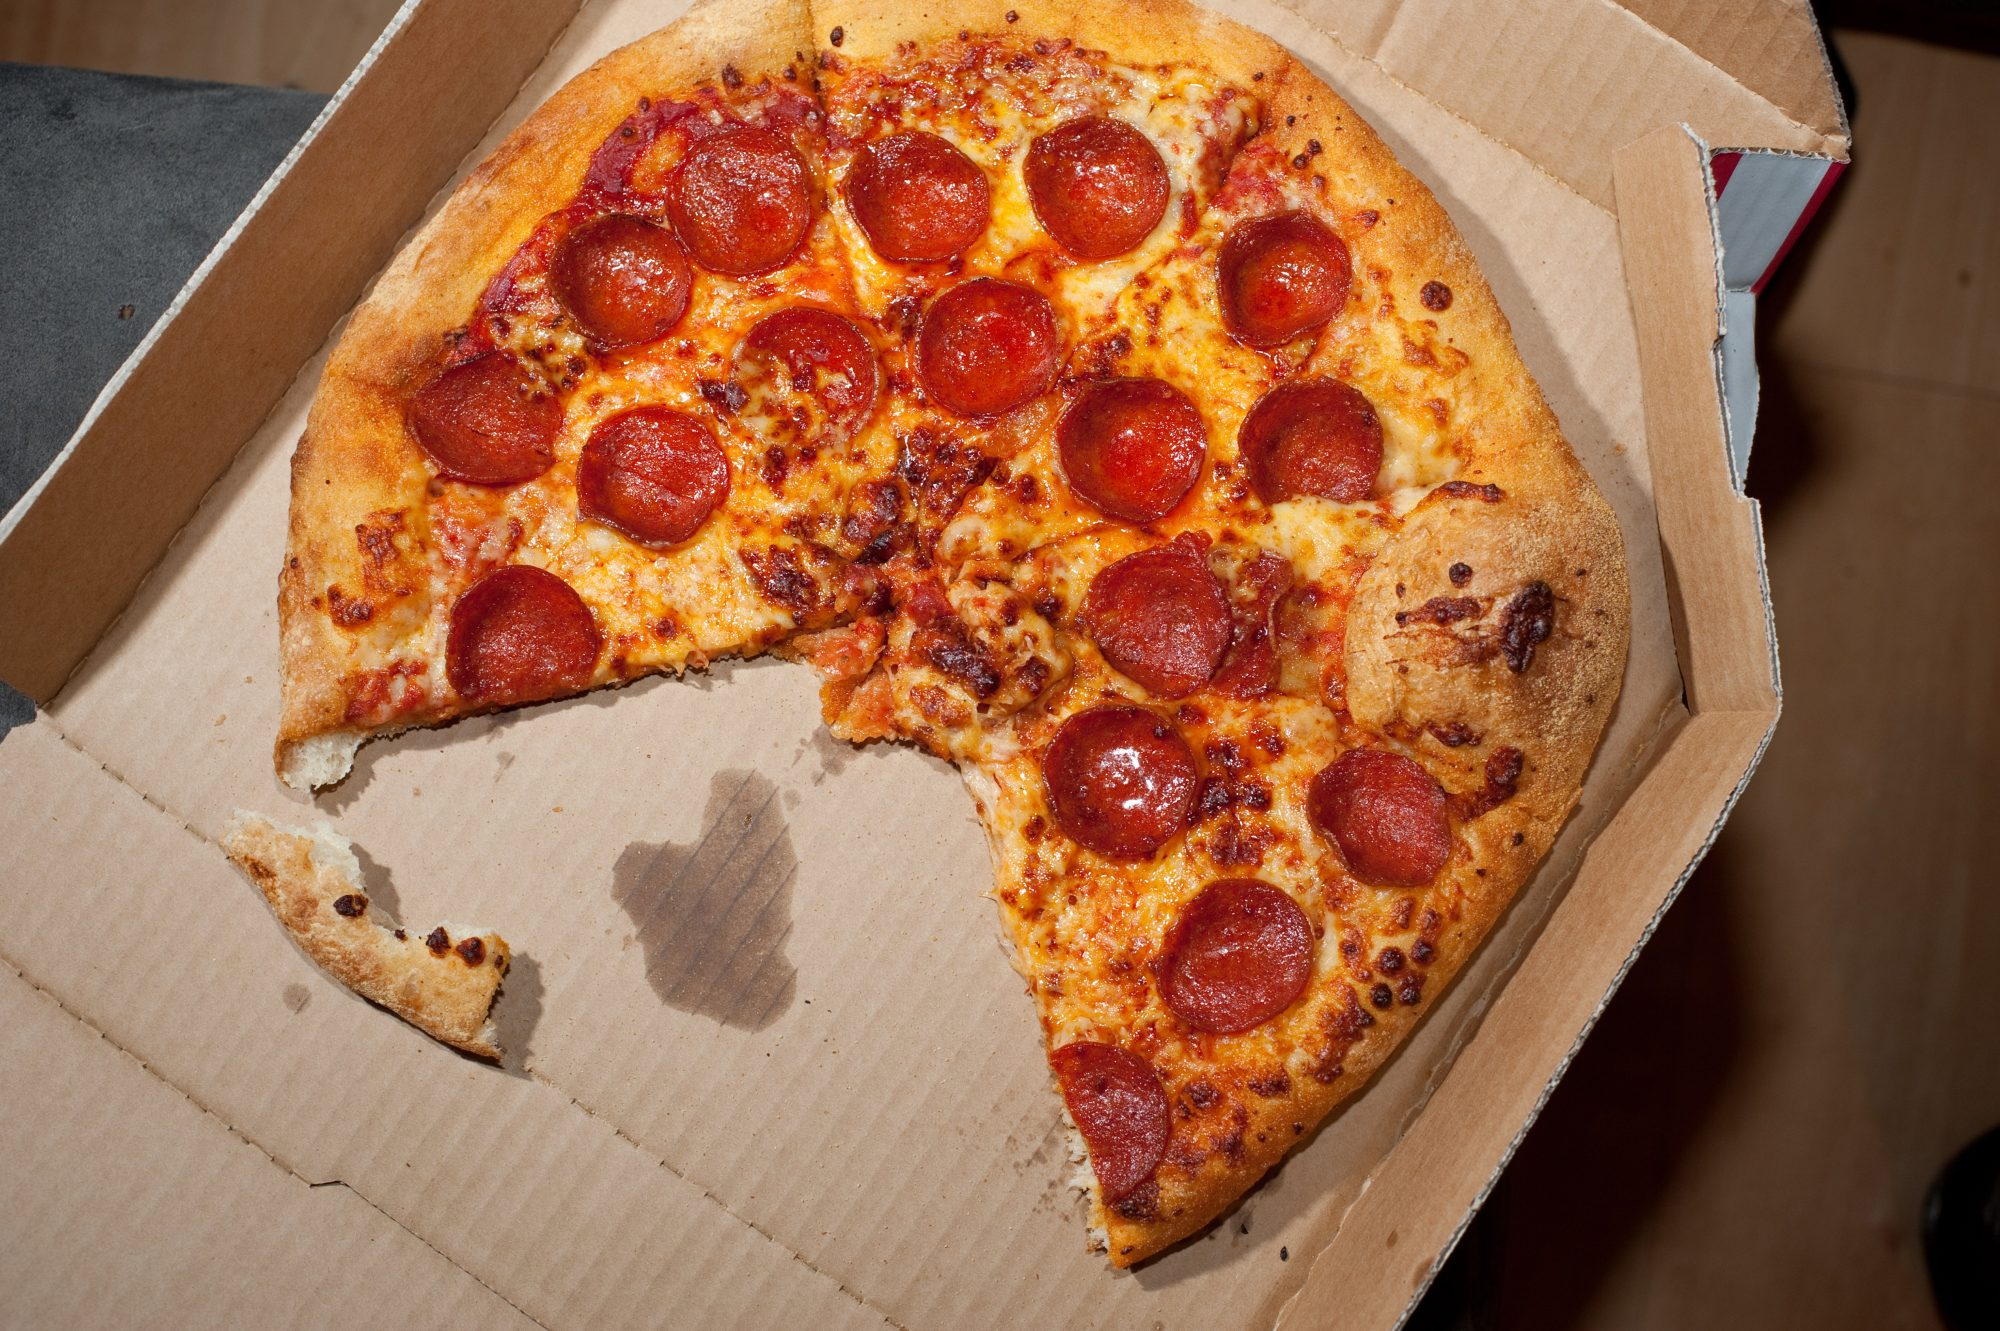 Inmates at a Chicago Jail Can Now Order Pizza Delivery